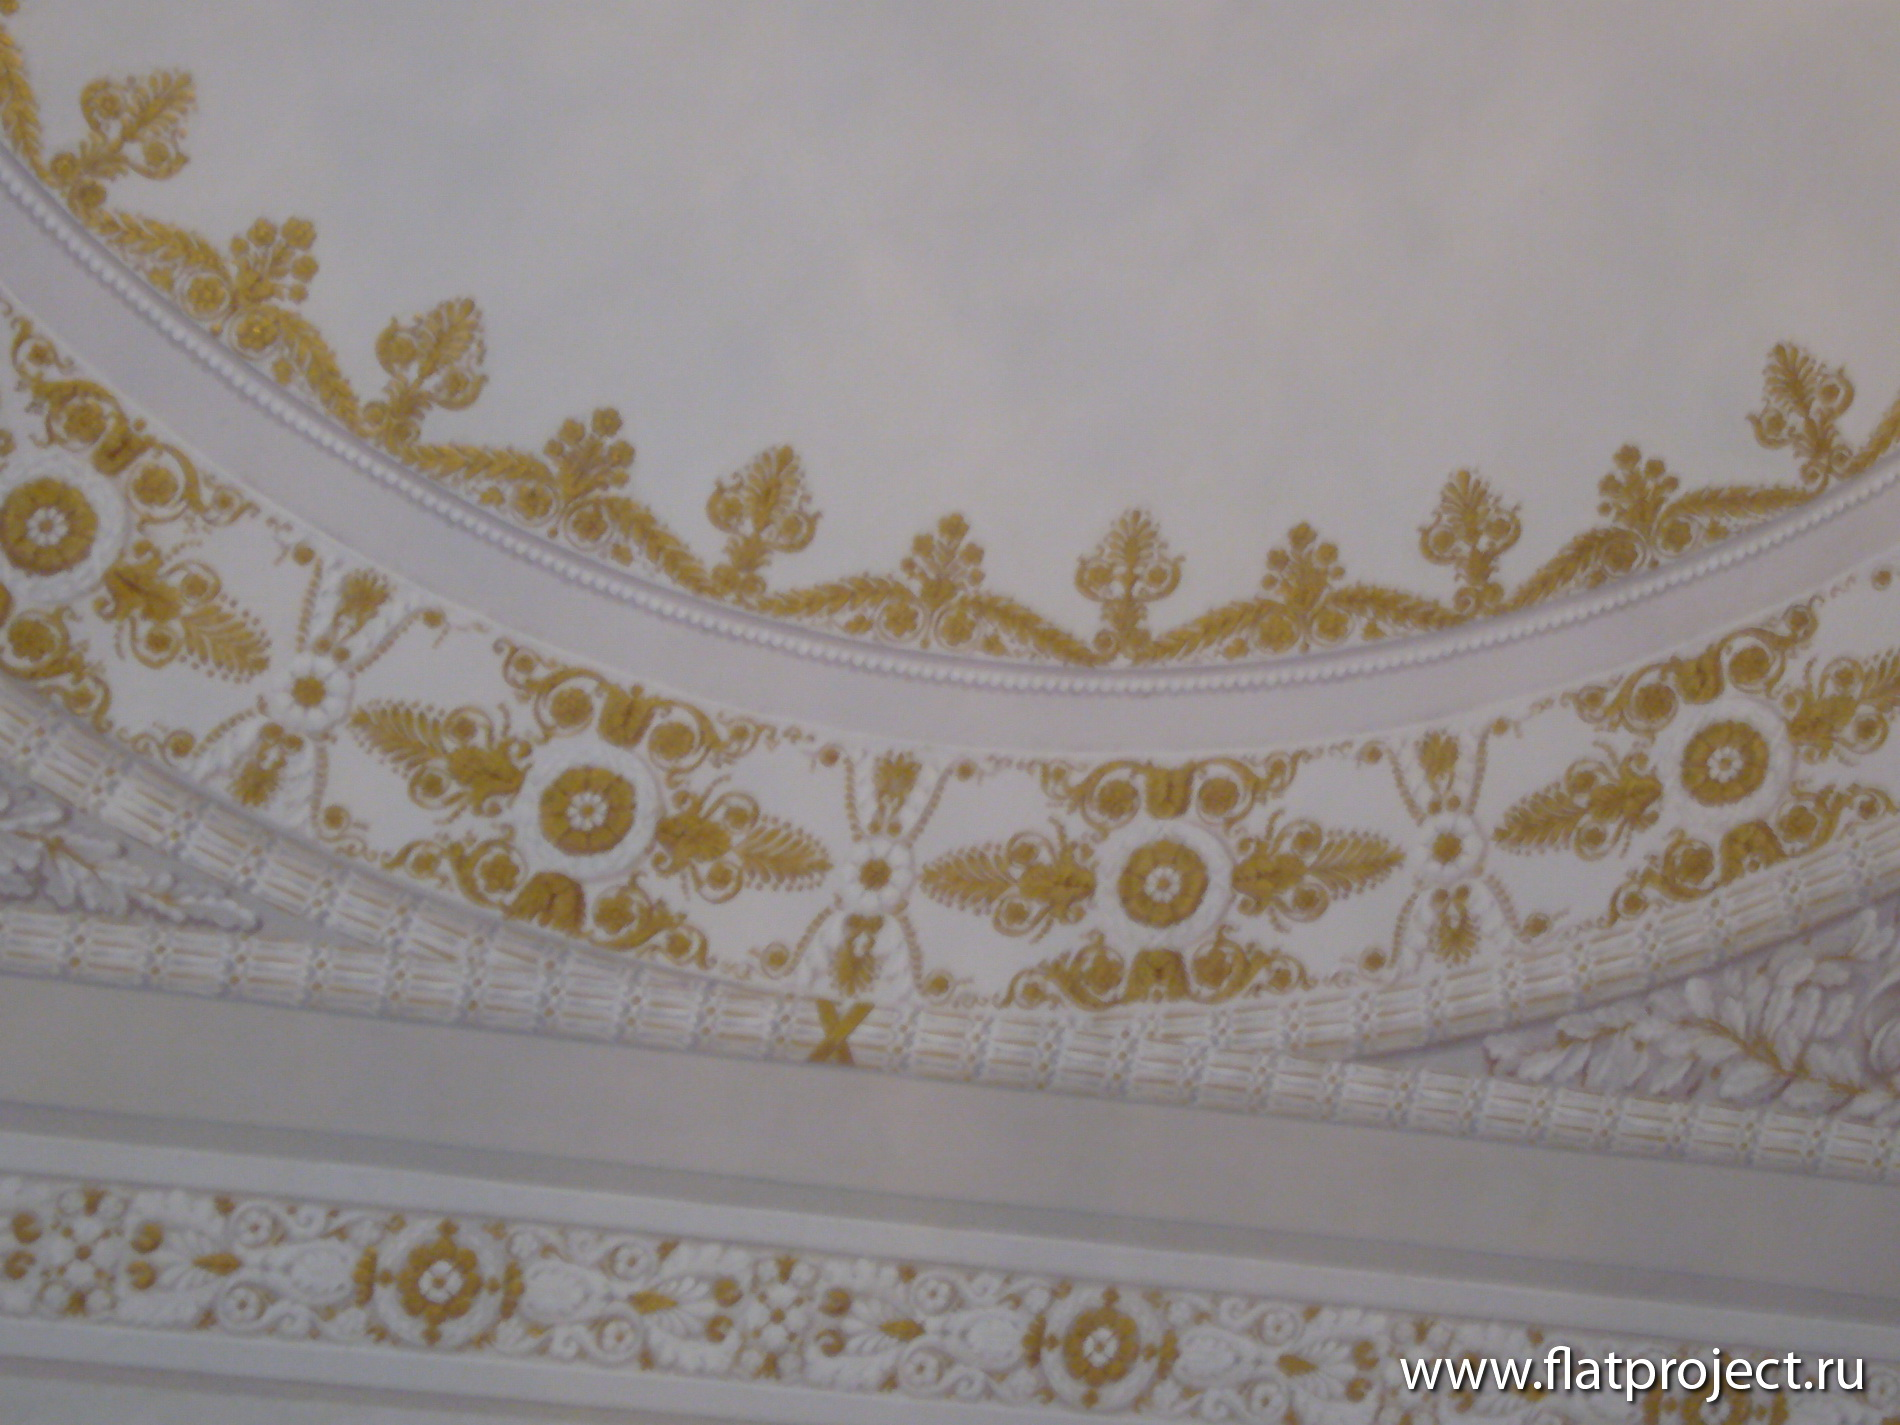 The State Russian museum interiors – photo 82